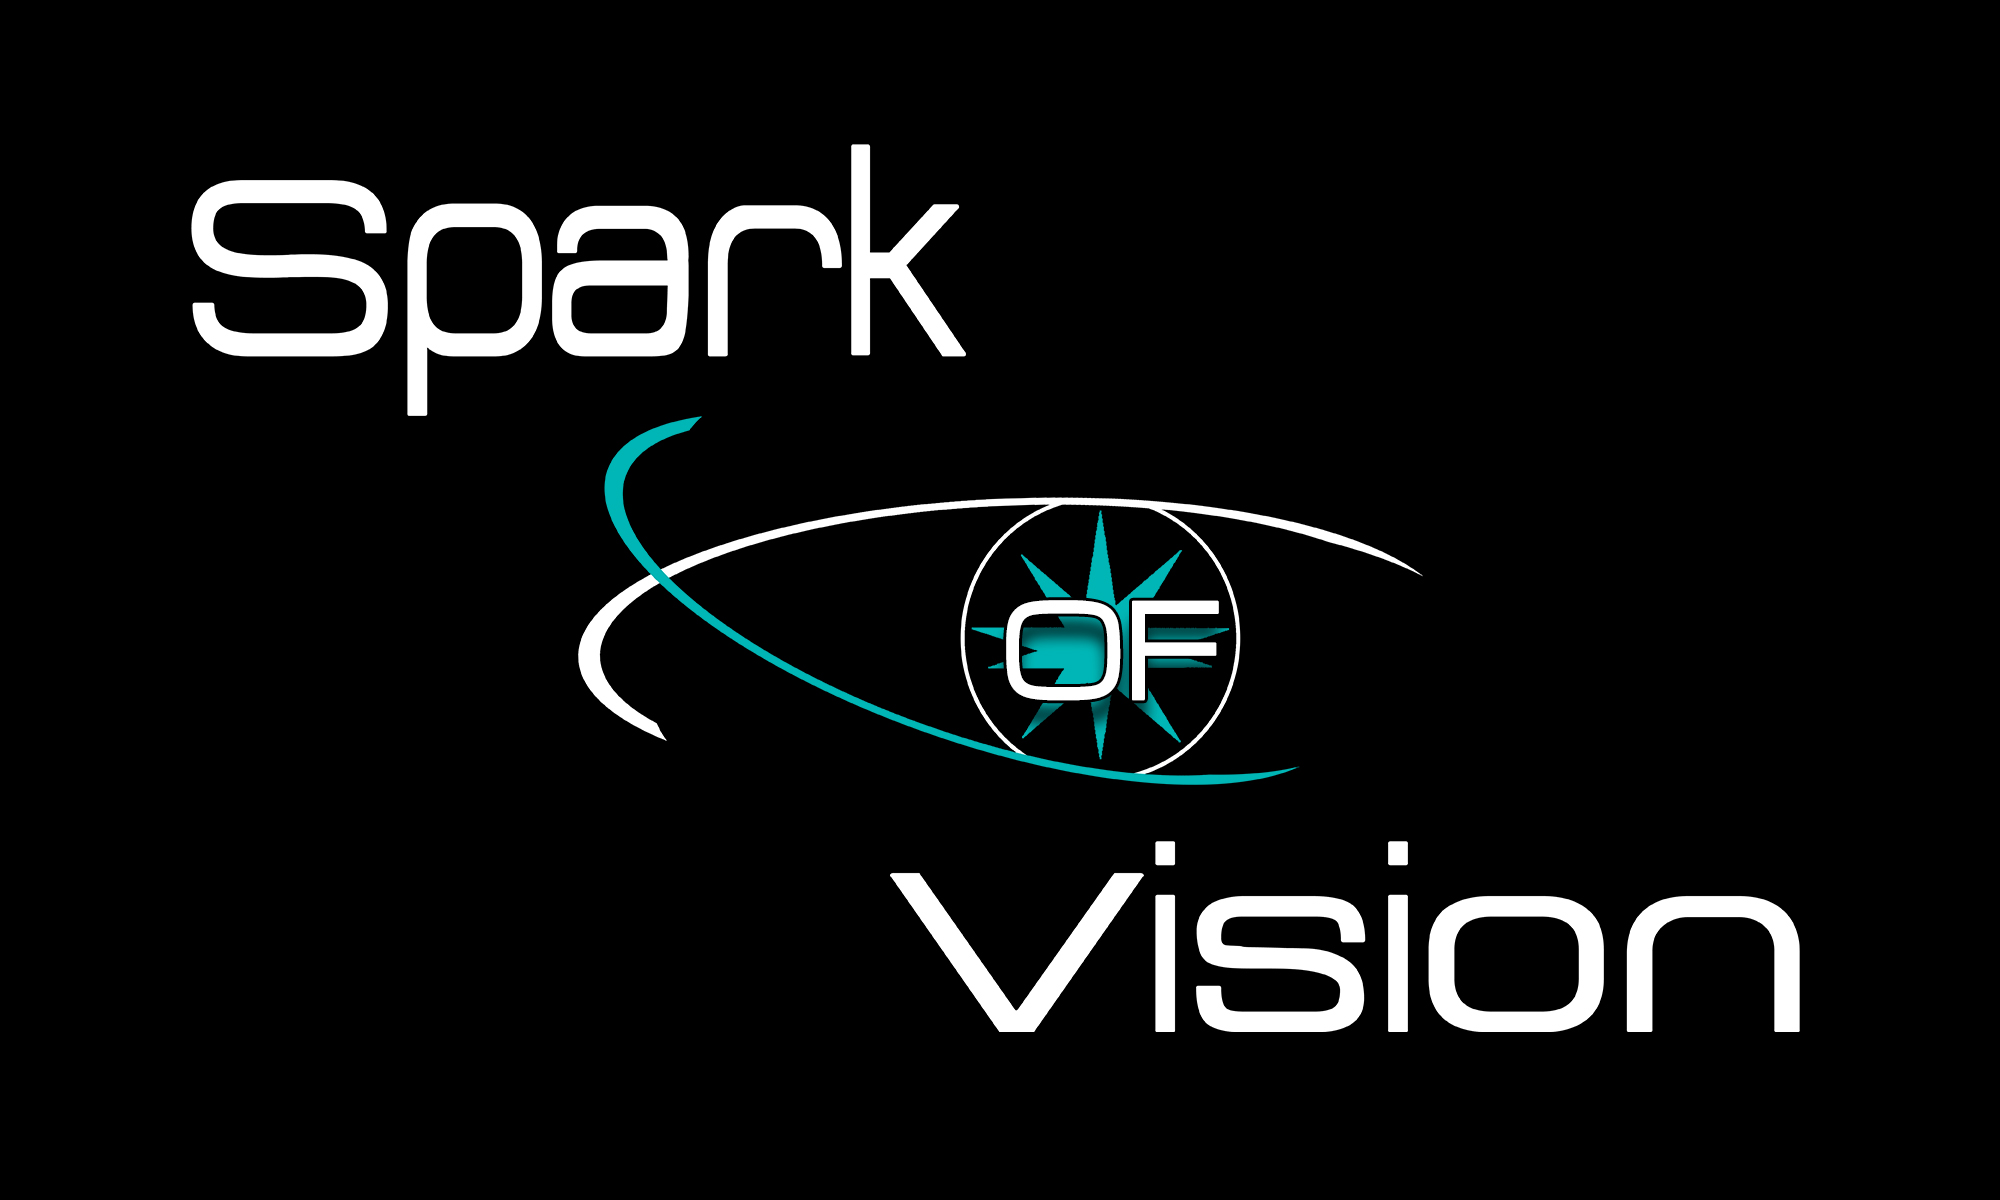 Spark of Vision